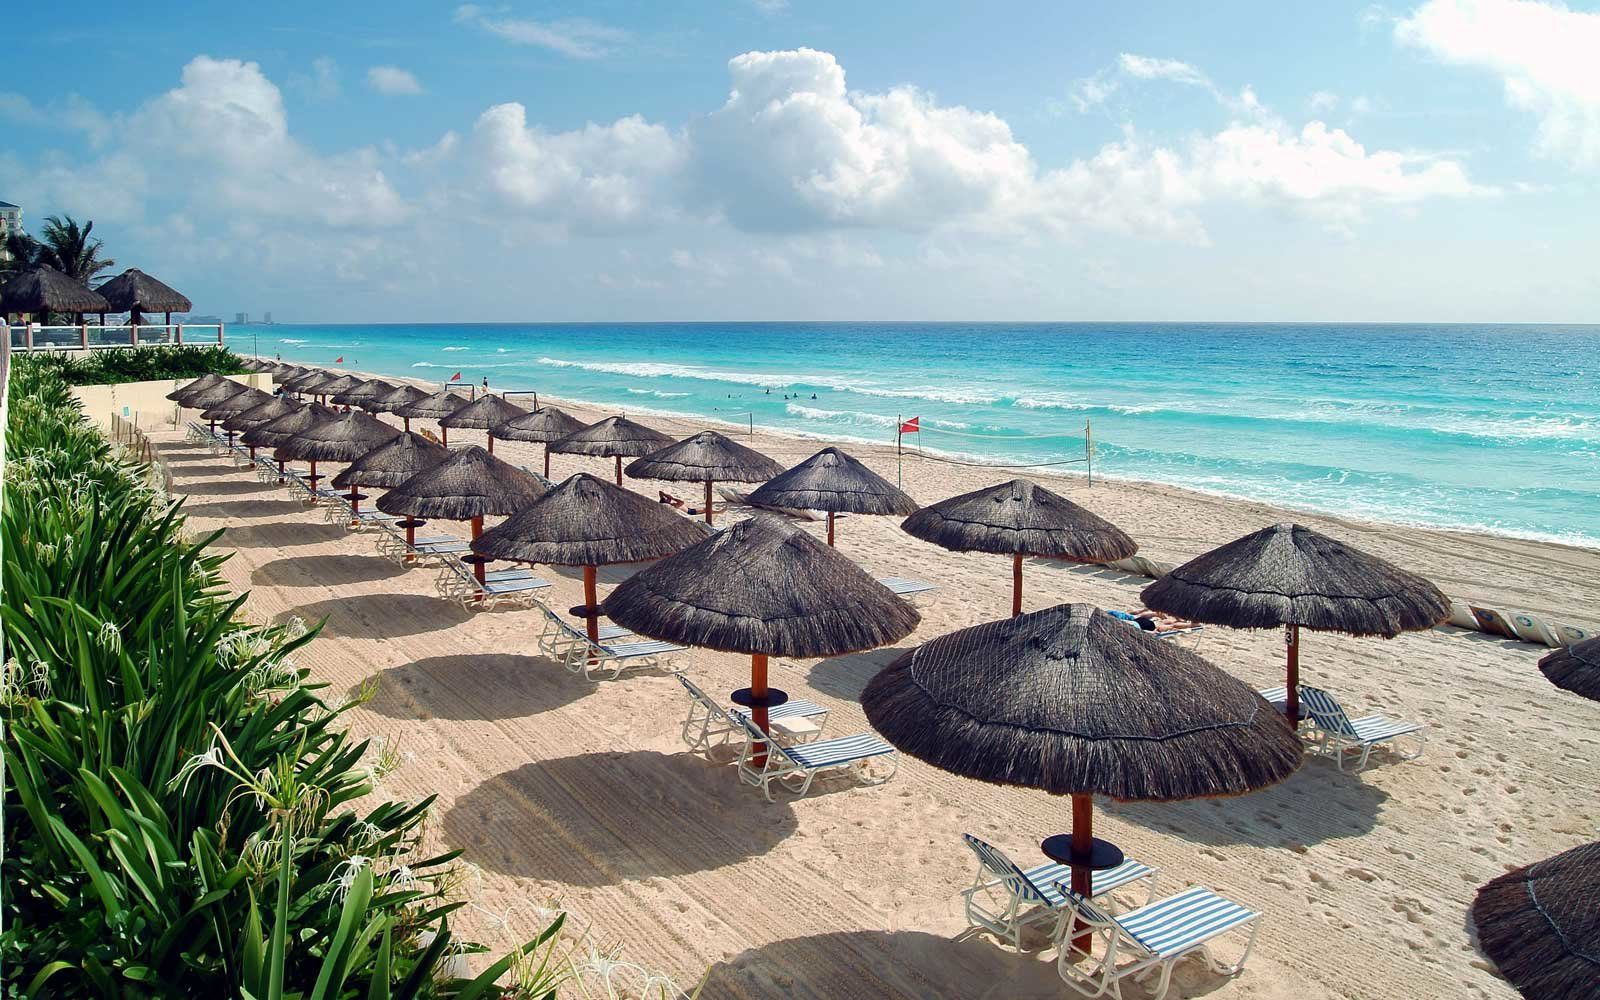 13 Best All Inclusive Resorts In Cancun For Families Couples And Solo Travelers Cancun Resorts All Inclusive Honeymoon Resorts Cancun All Inclusive